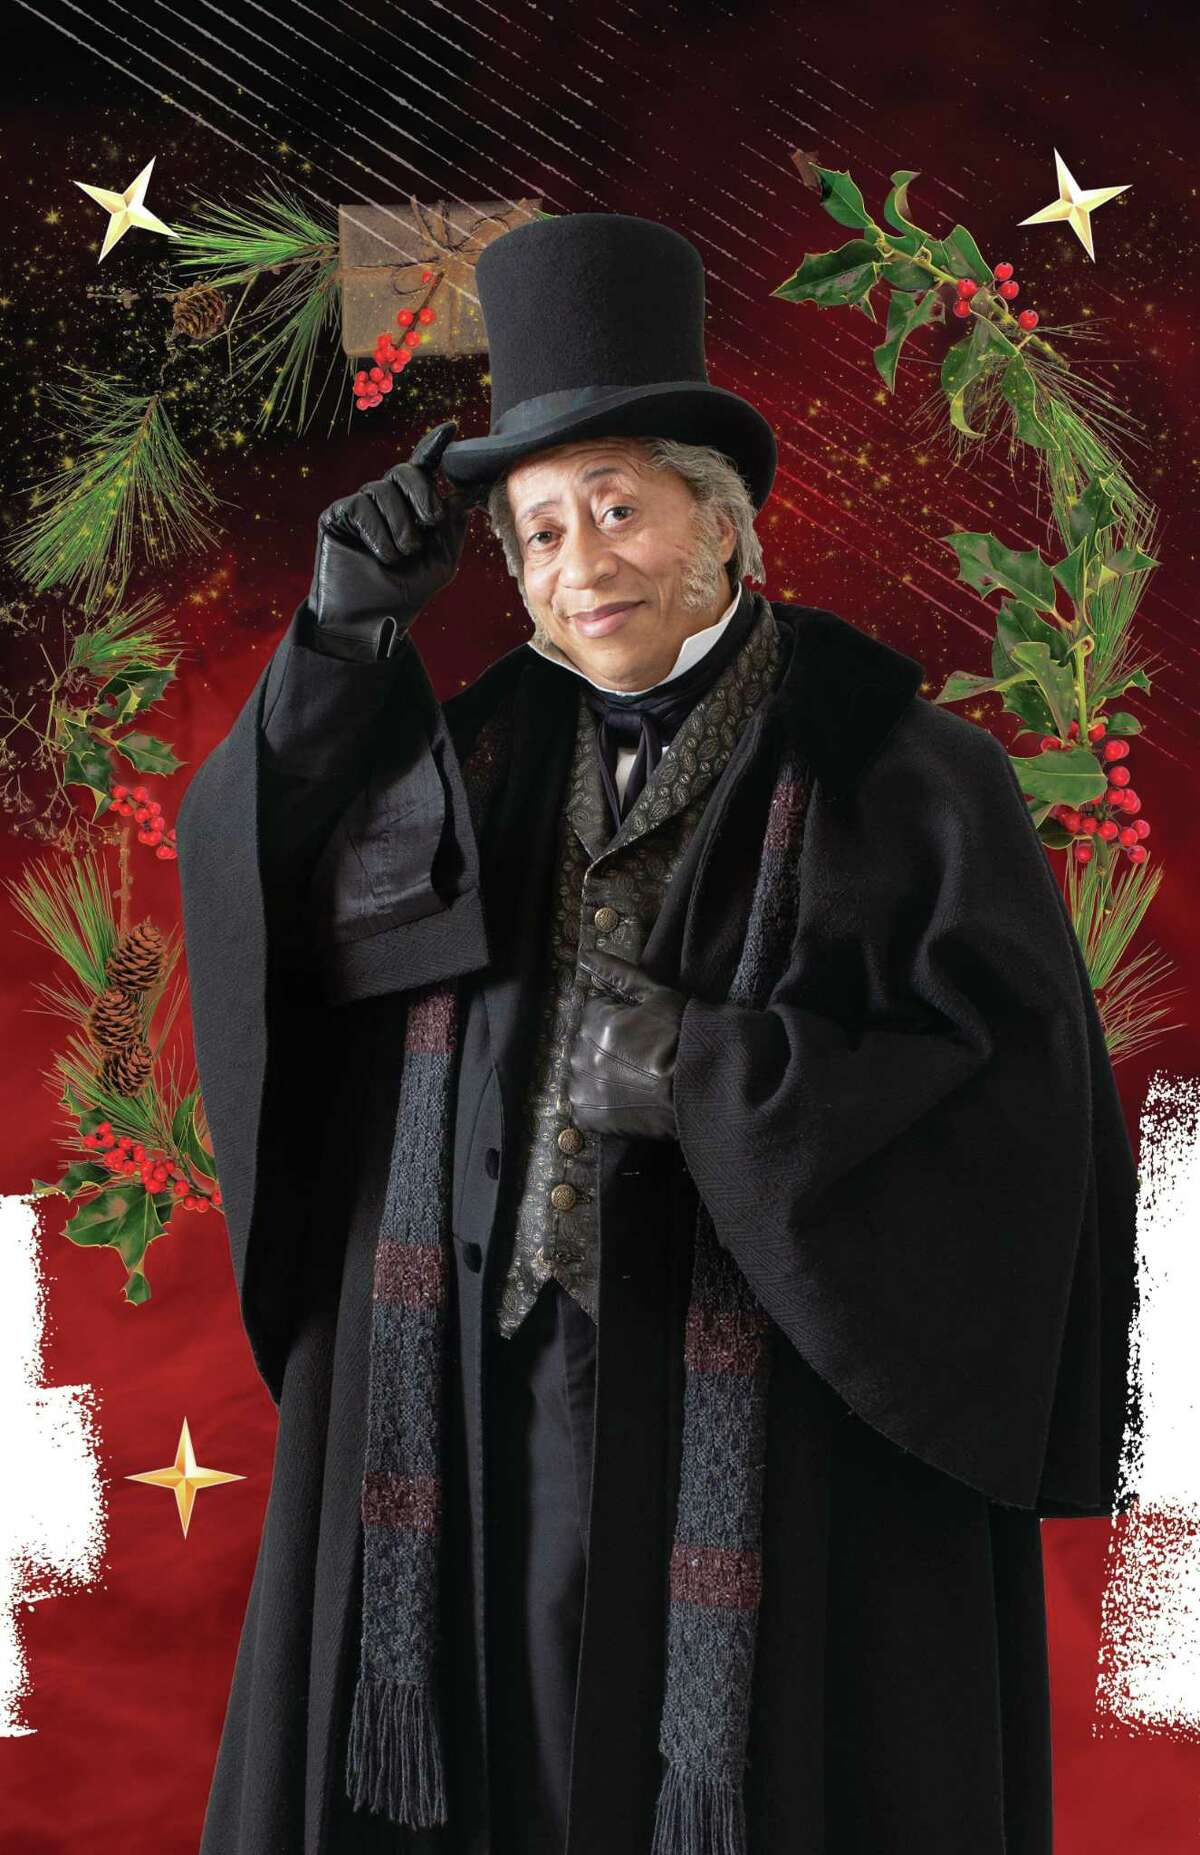 """Rainey will reprise his role as Ebenezer Scrooge this year at the Alley Theatre in Doris Baizley's adaptation of Charles Dickens' """"A Christmas Carol."""""""